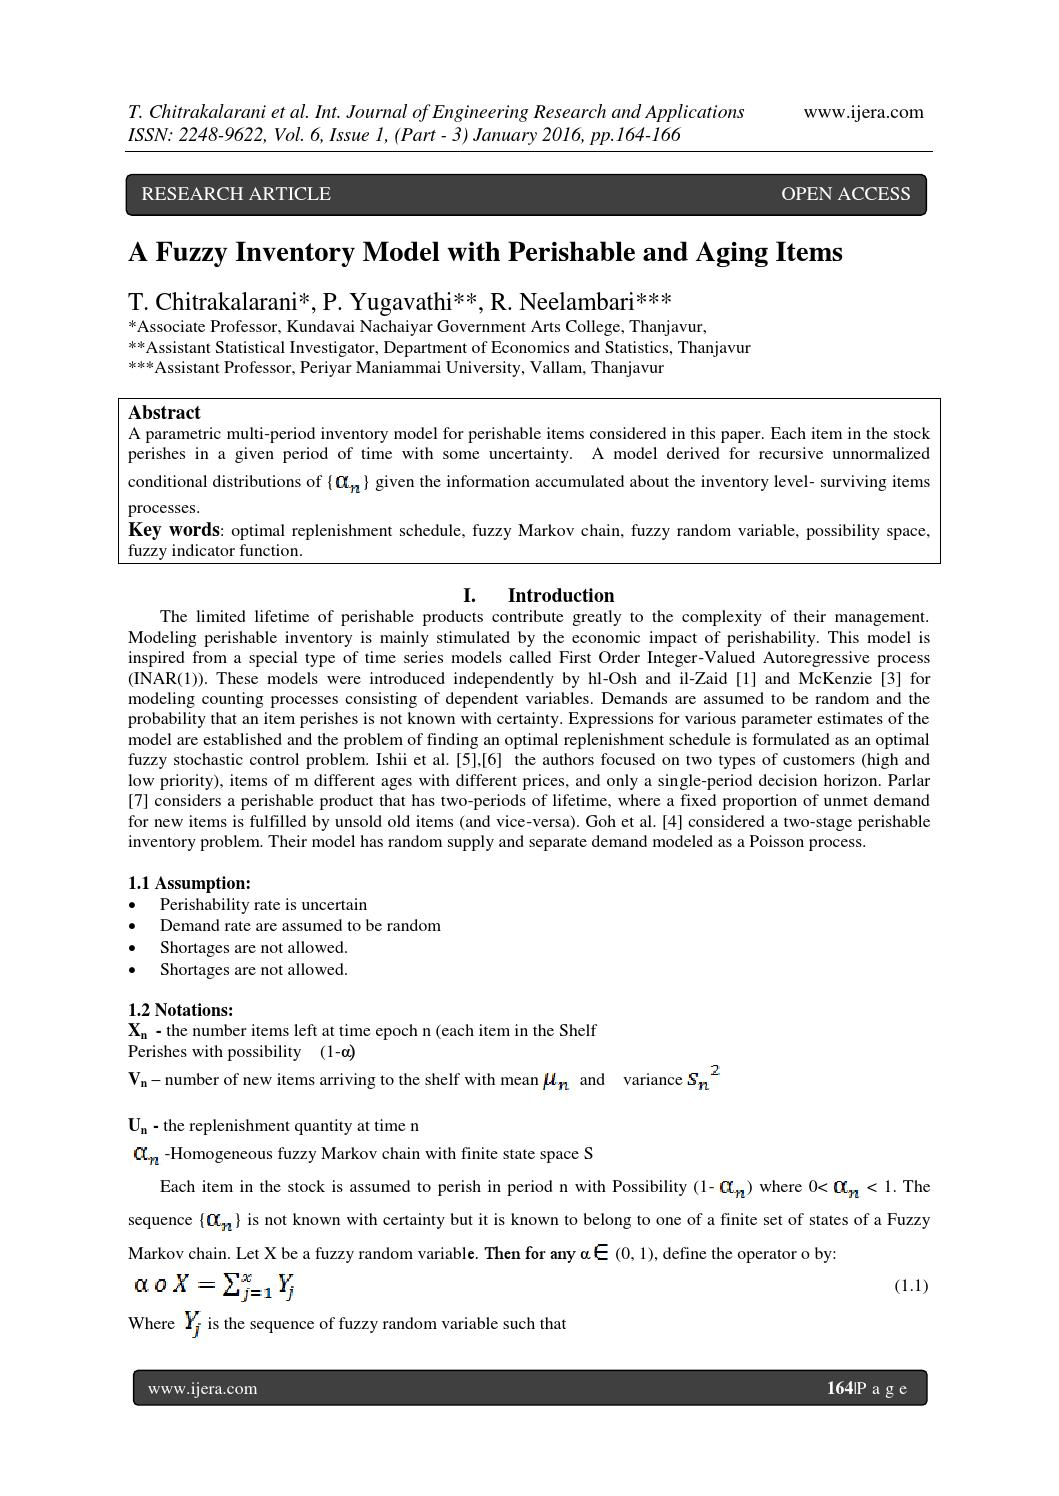 A Fuzzy Inventory Model with Perishable and Aging Items